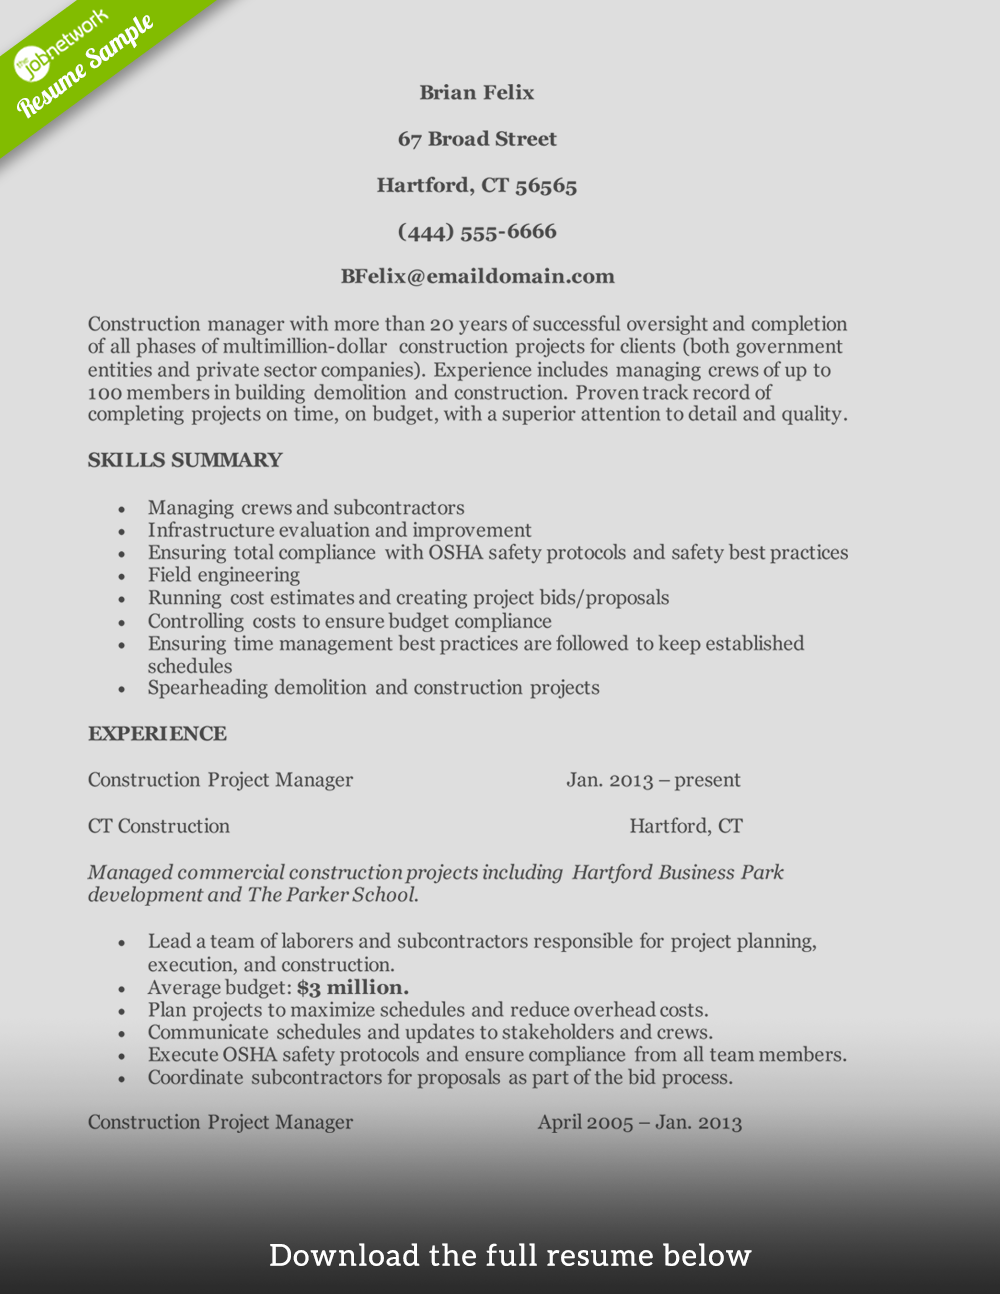 Resume Surgery Online Resume Building App How To Write A Perfect Construction Resume Examples Included